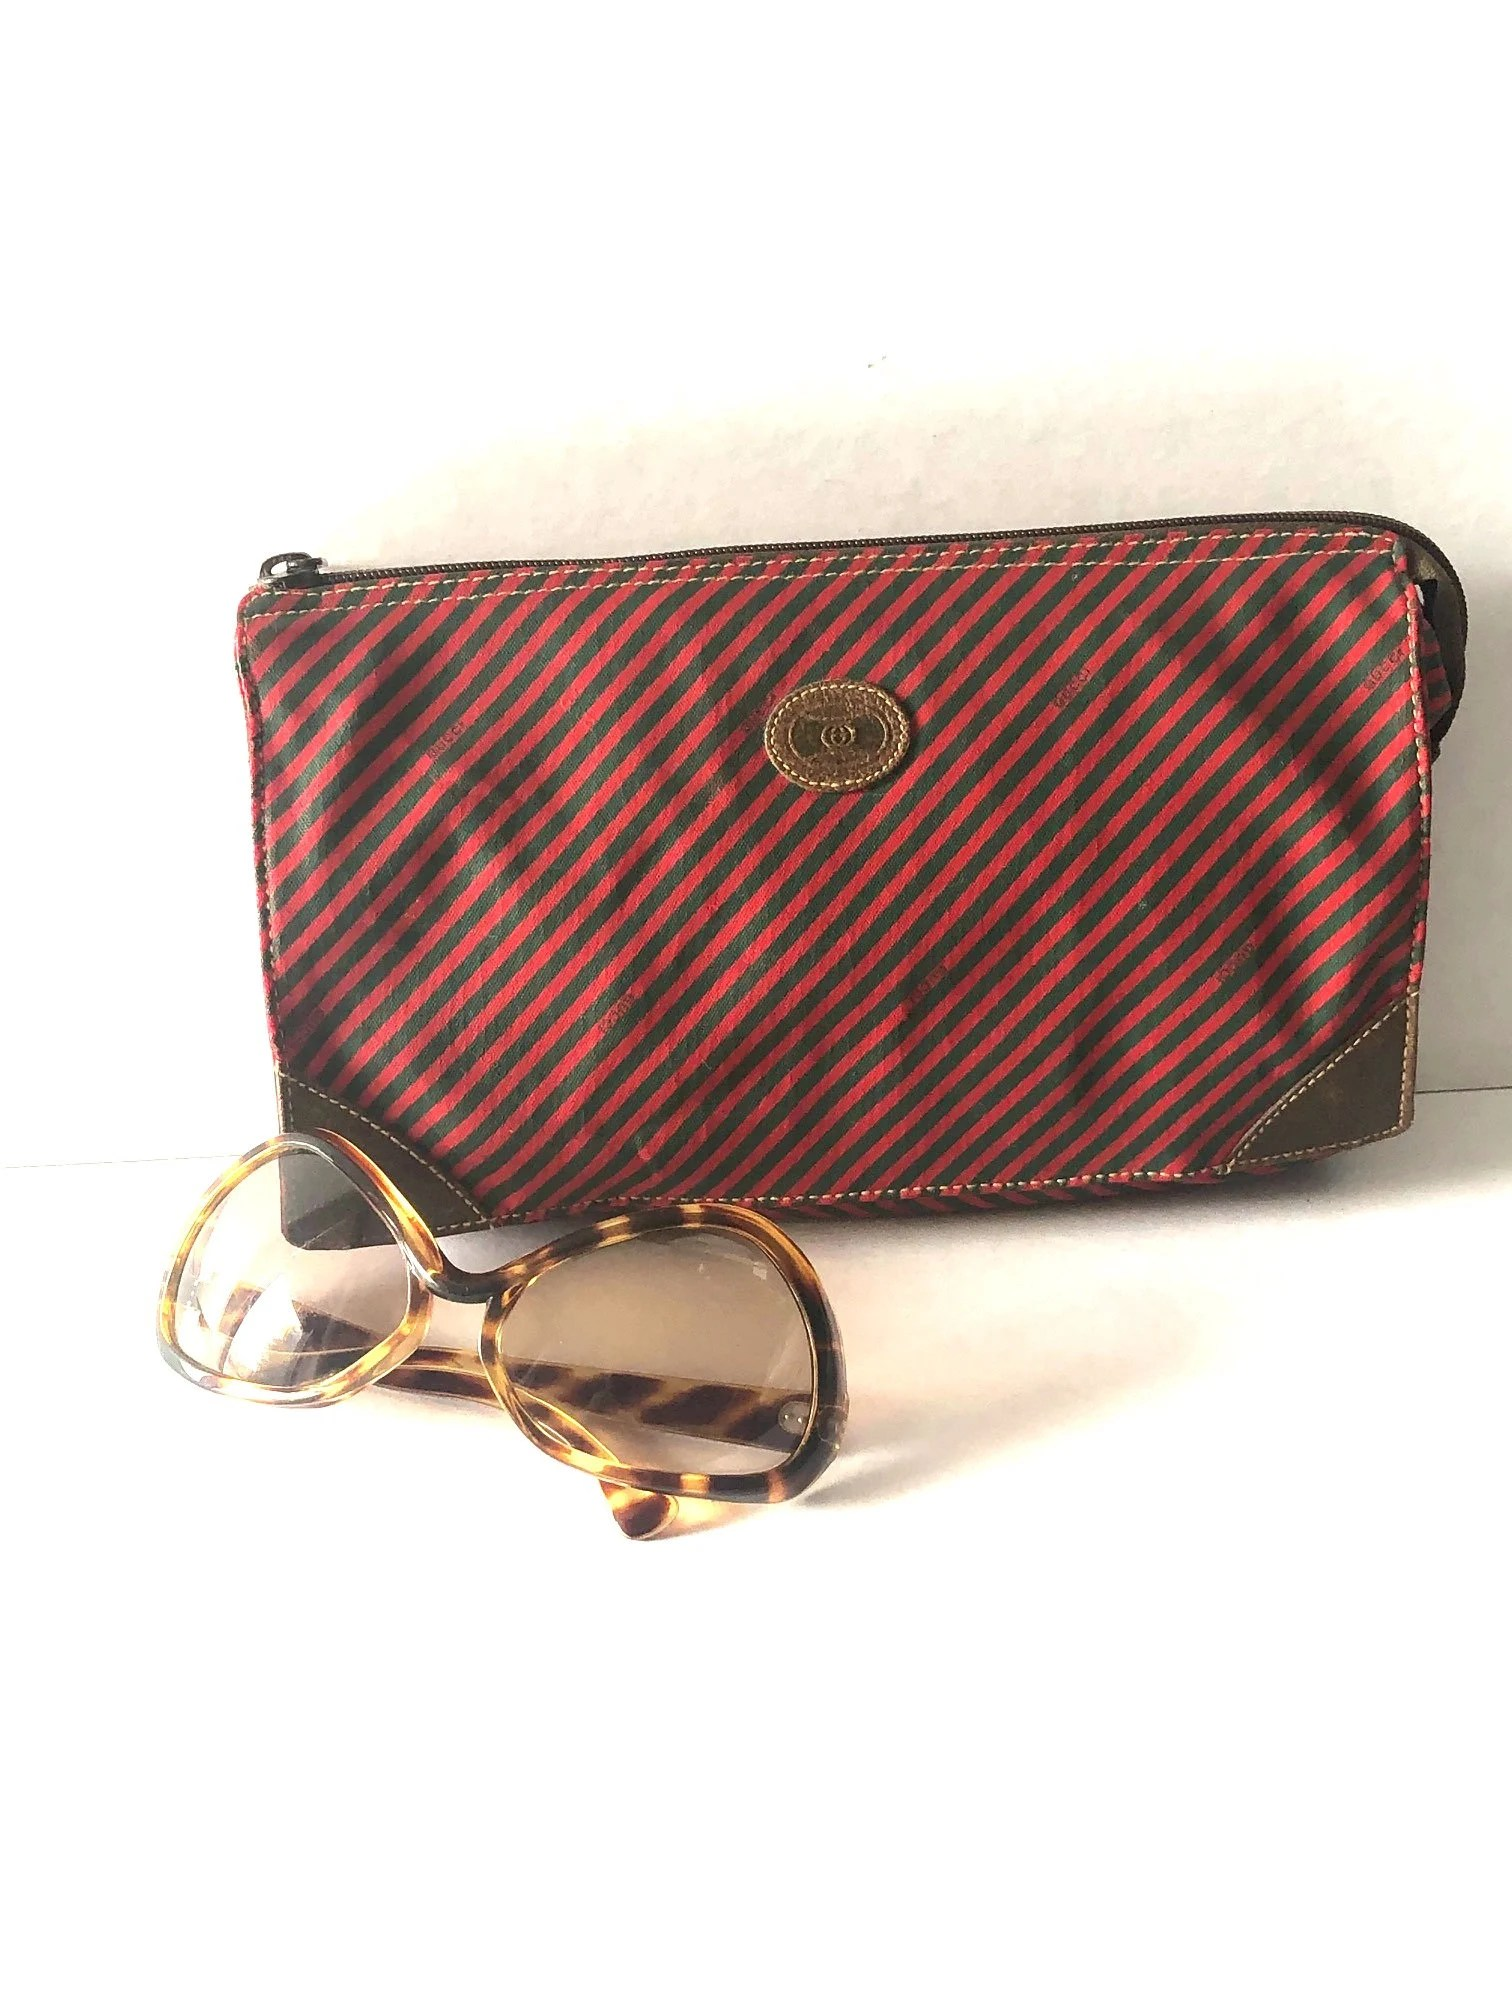 Etsy Vintage Gucci Striped Vintage Gucci Clutch